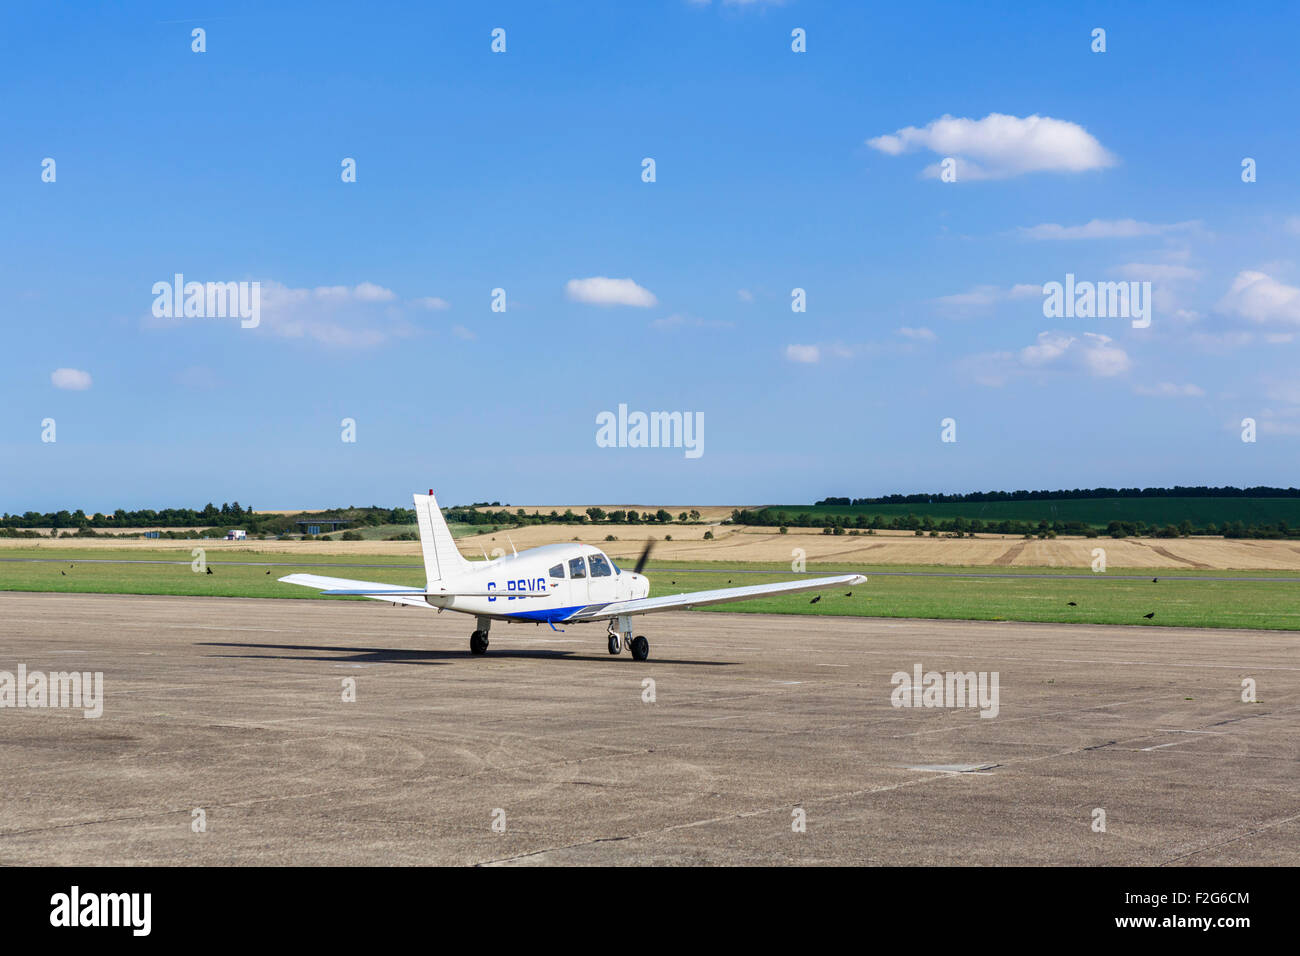 Piper PA-28-161 Cherokee Warrior II waiting for take-off clearance at Duxford aerodrome, Cambridgeshire, England, - Stock Image